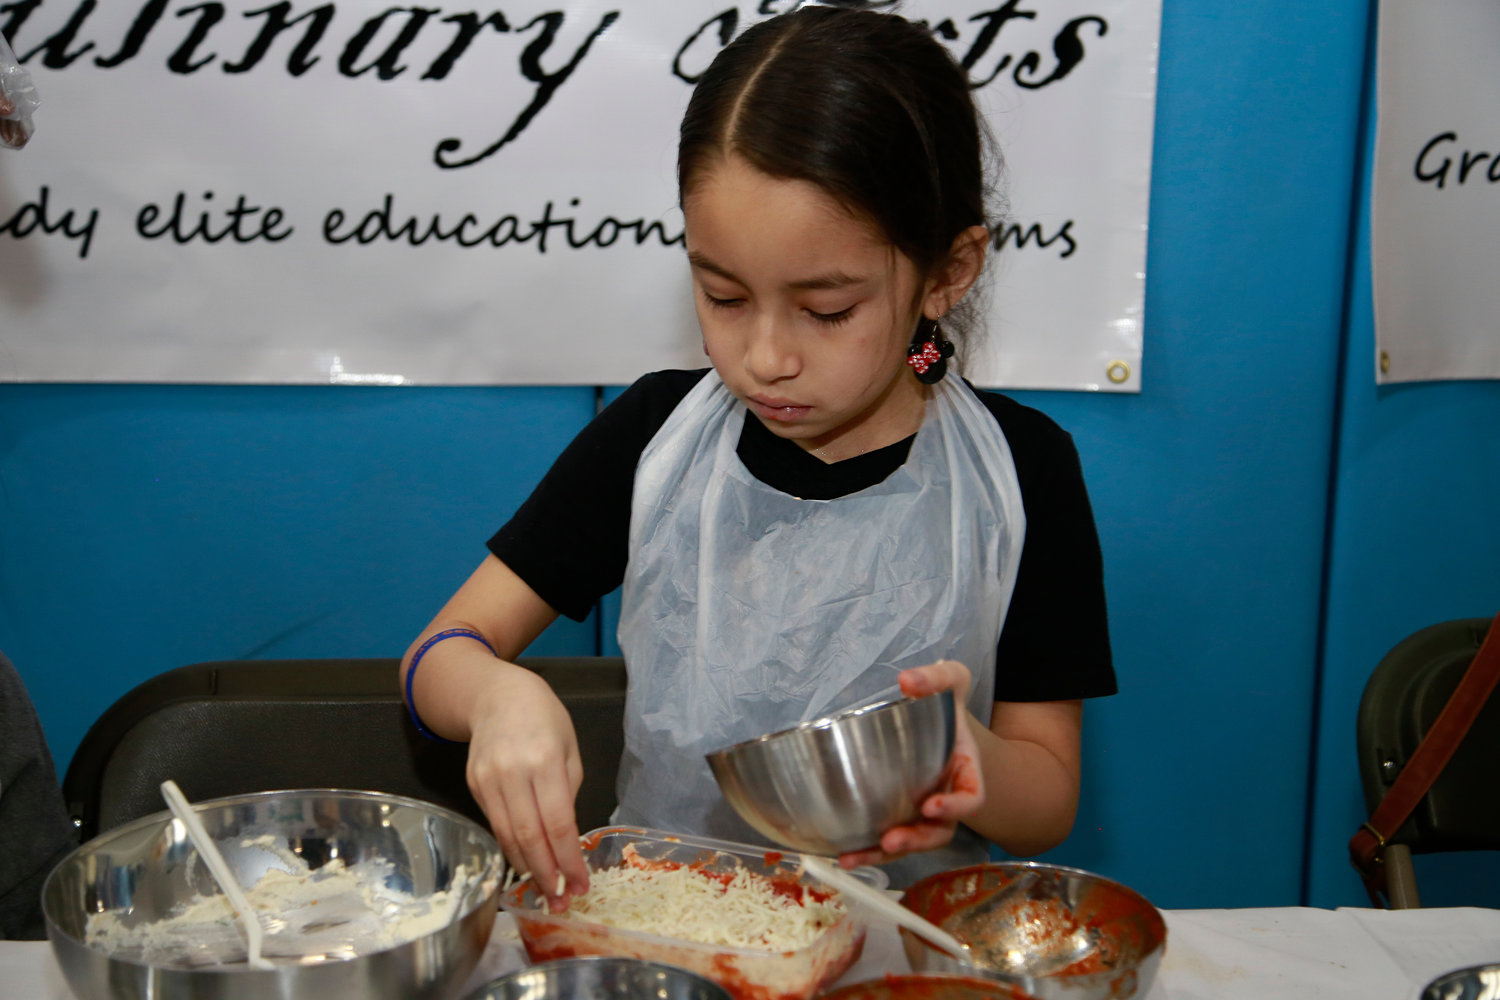 Kiara Ayala, 8, sprinkled shredded mozzarella cheese on her lasagna.